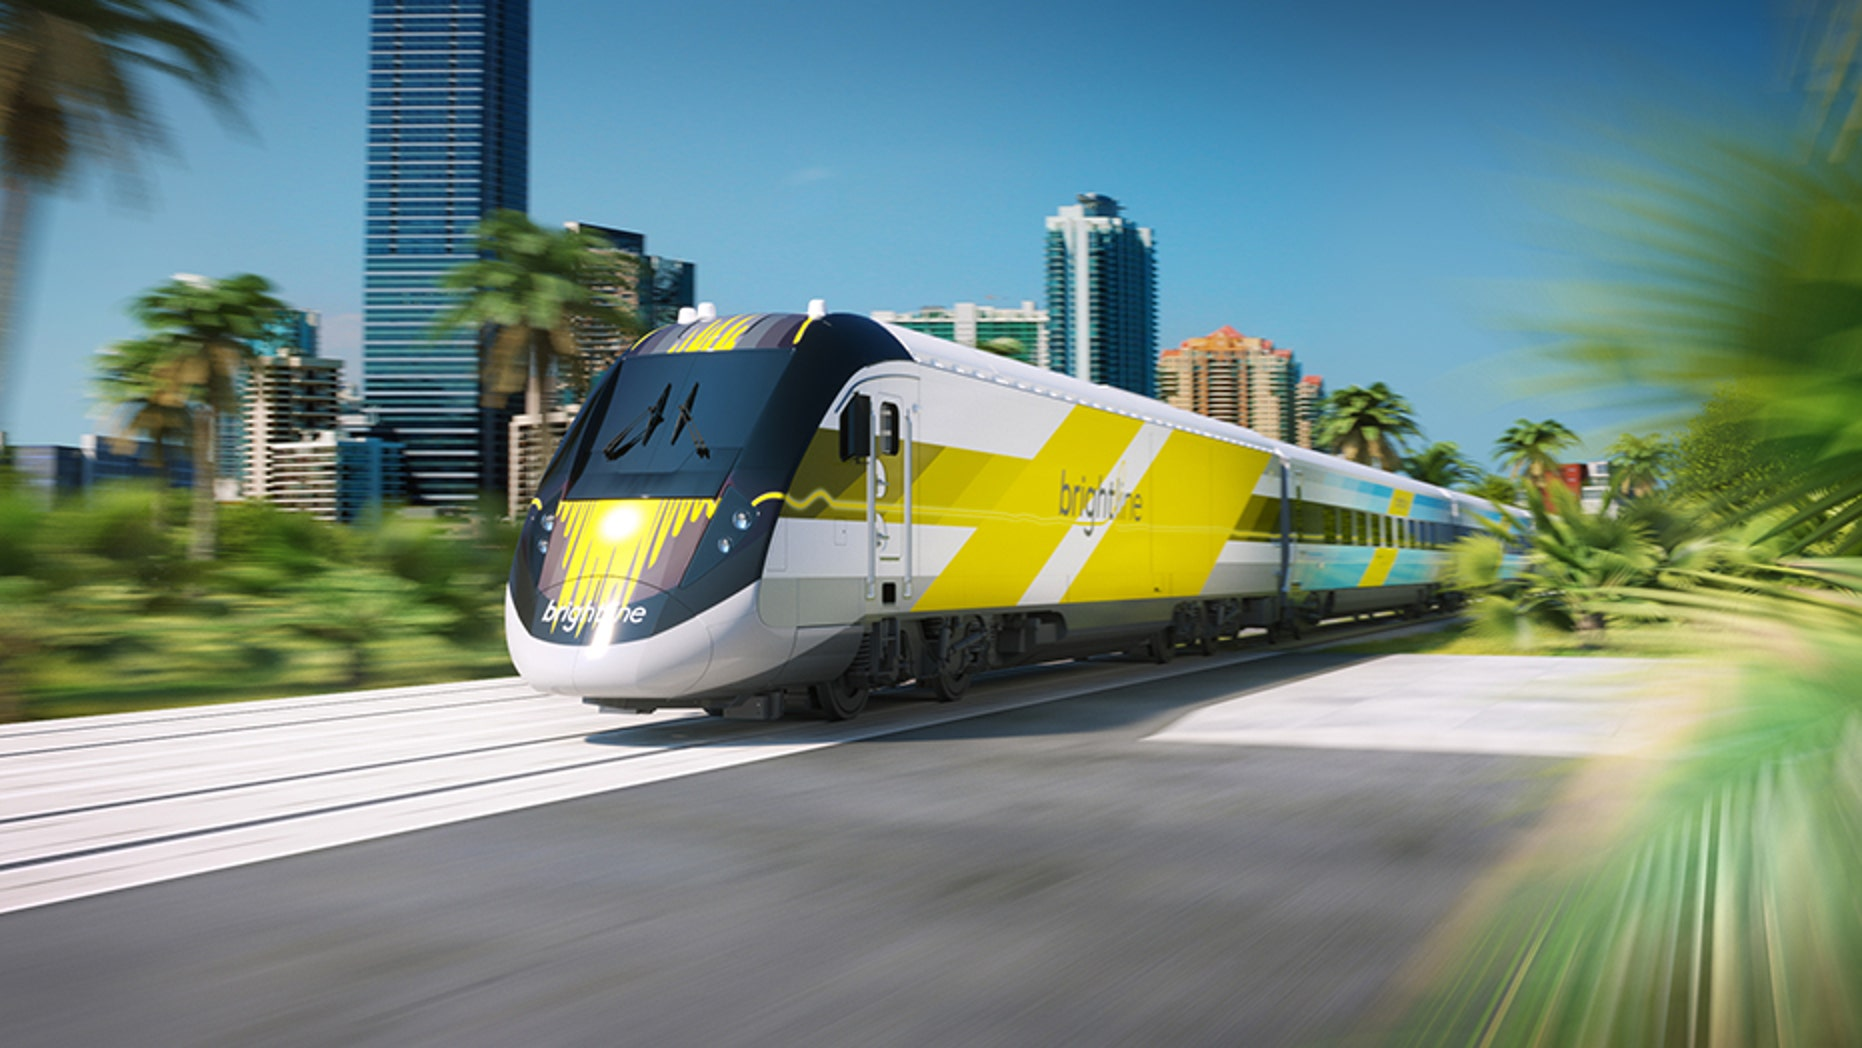 A man in Florida was hit and killed by a high speed Brightline train on Sunday, police said.